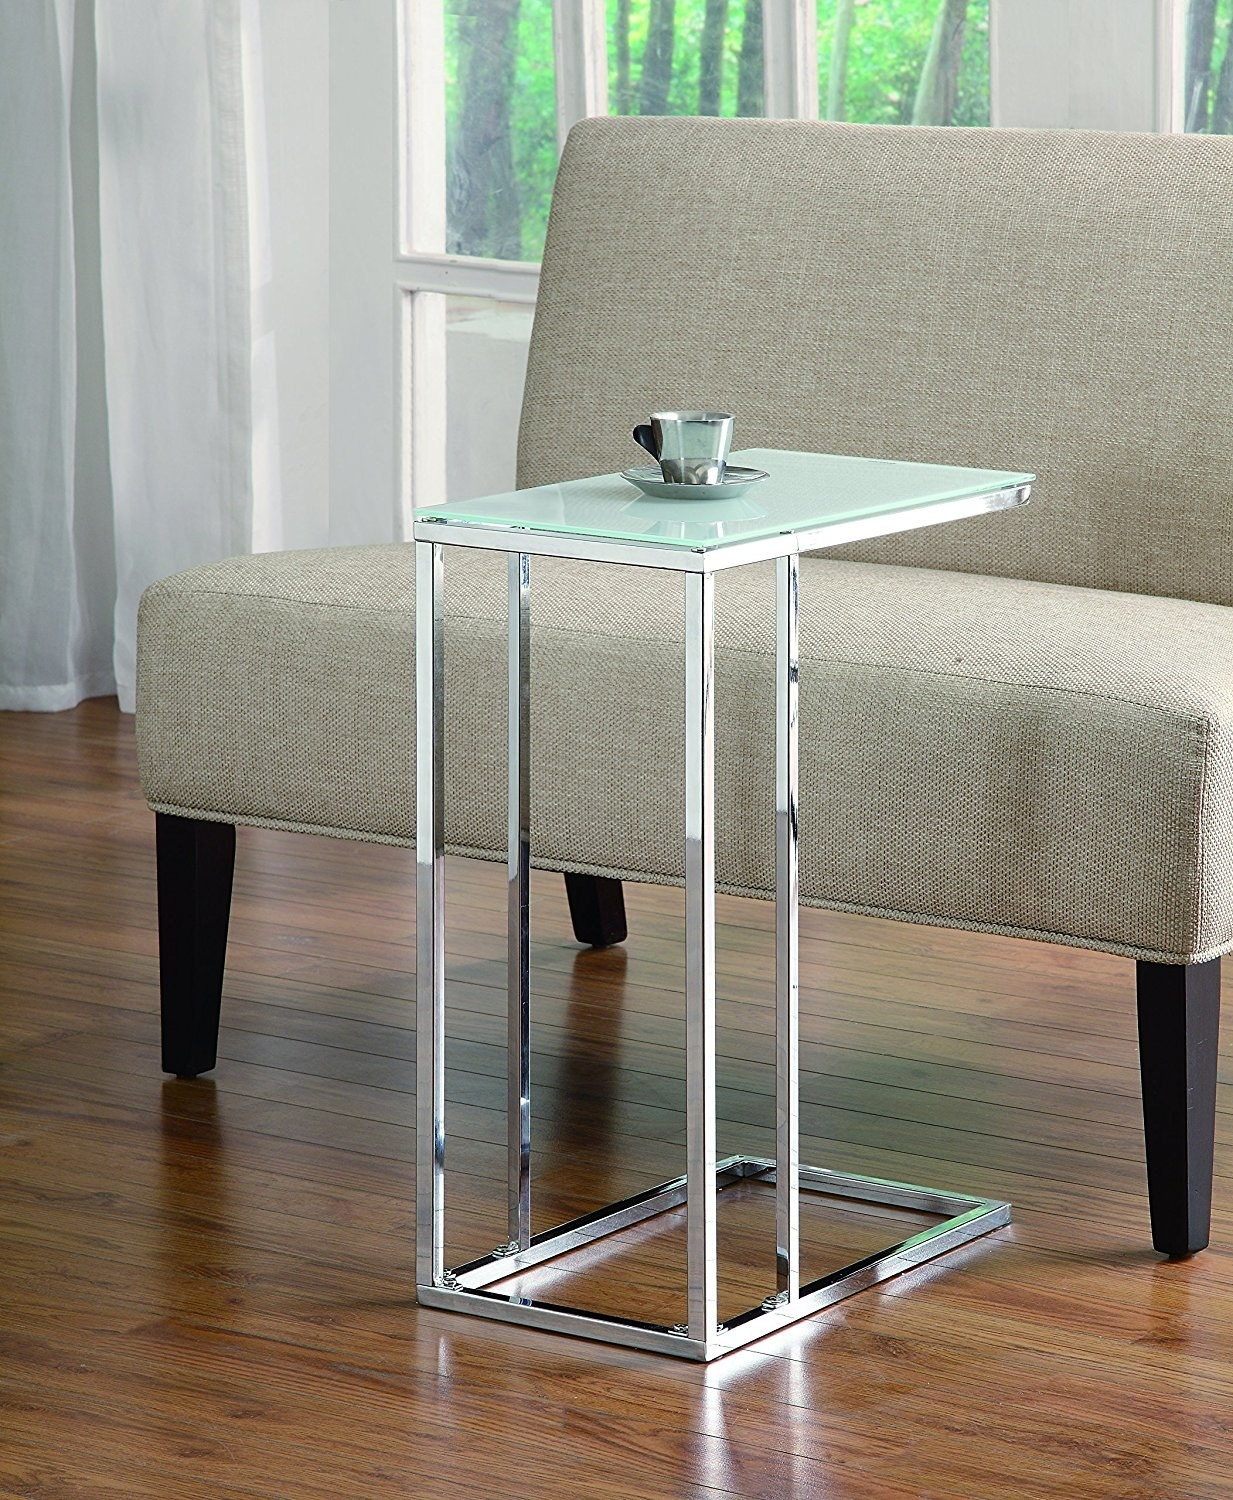 The table with a glass top and silver legs